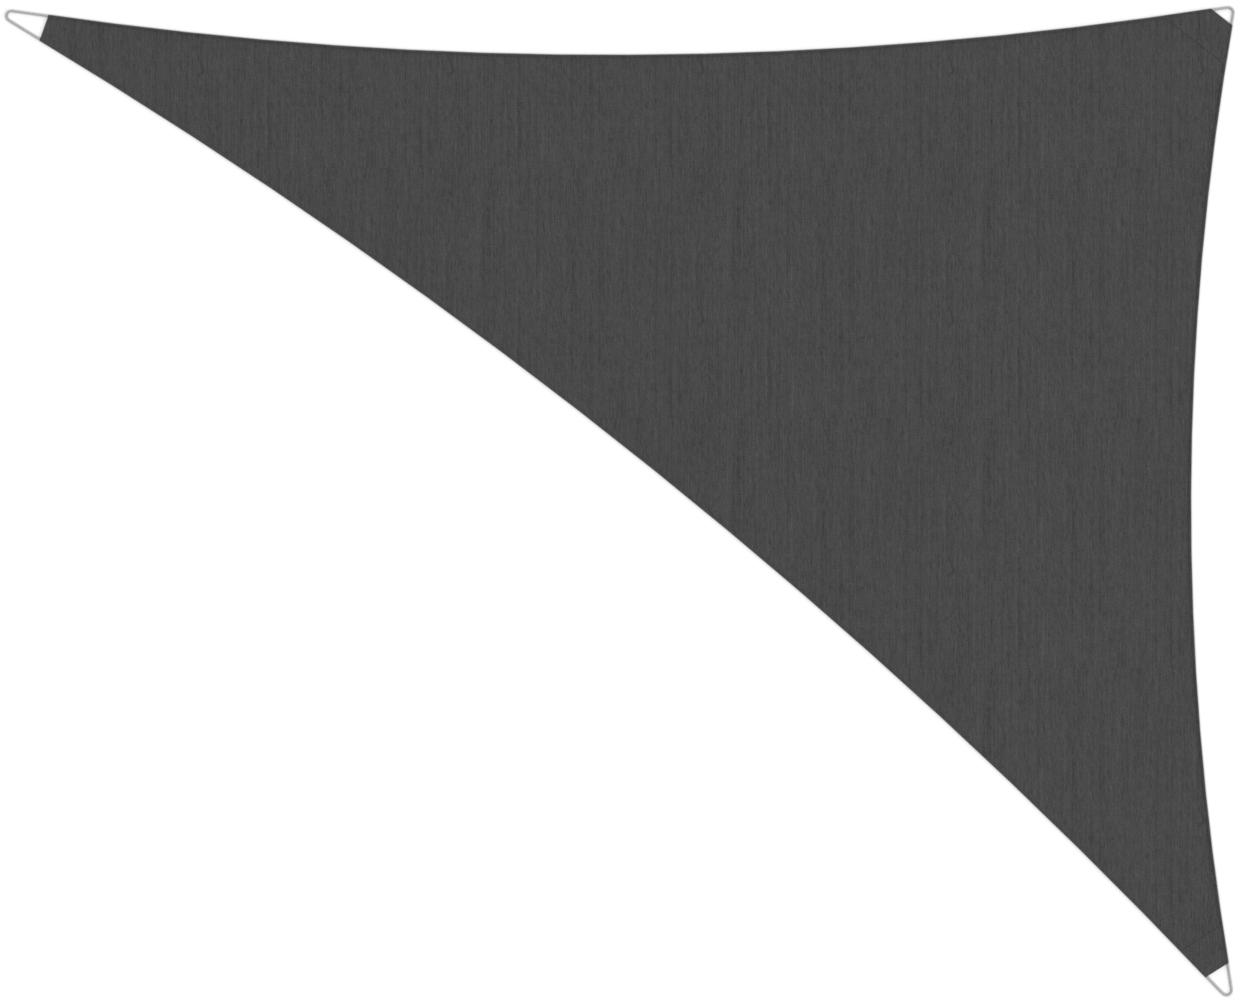 Ingenua shade sail Triangle 4 x 5 x 6,4 m, for outdoor use. Colour of the fabric shade sail Flanelle.